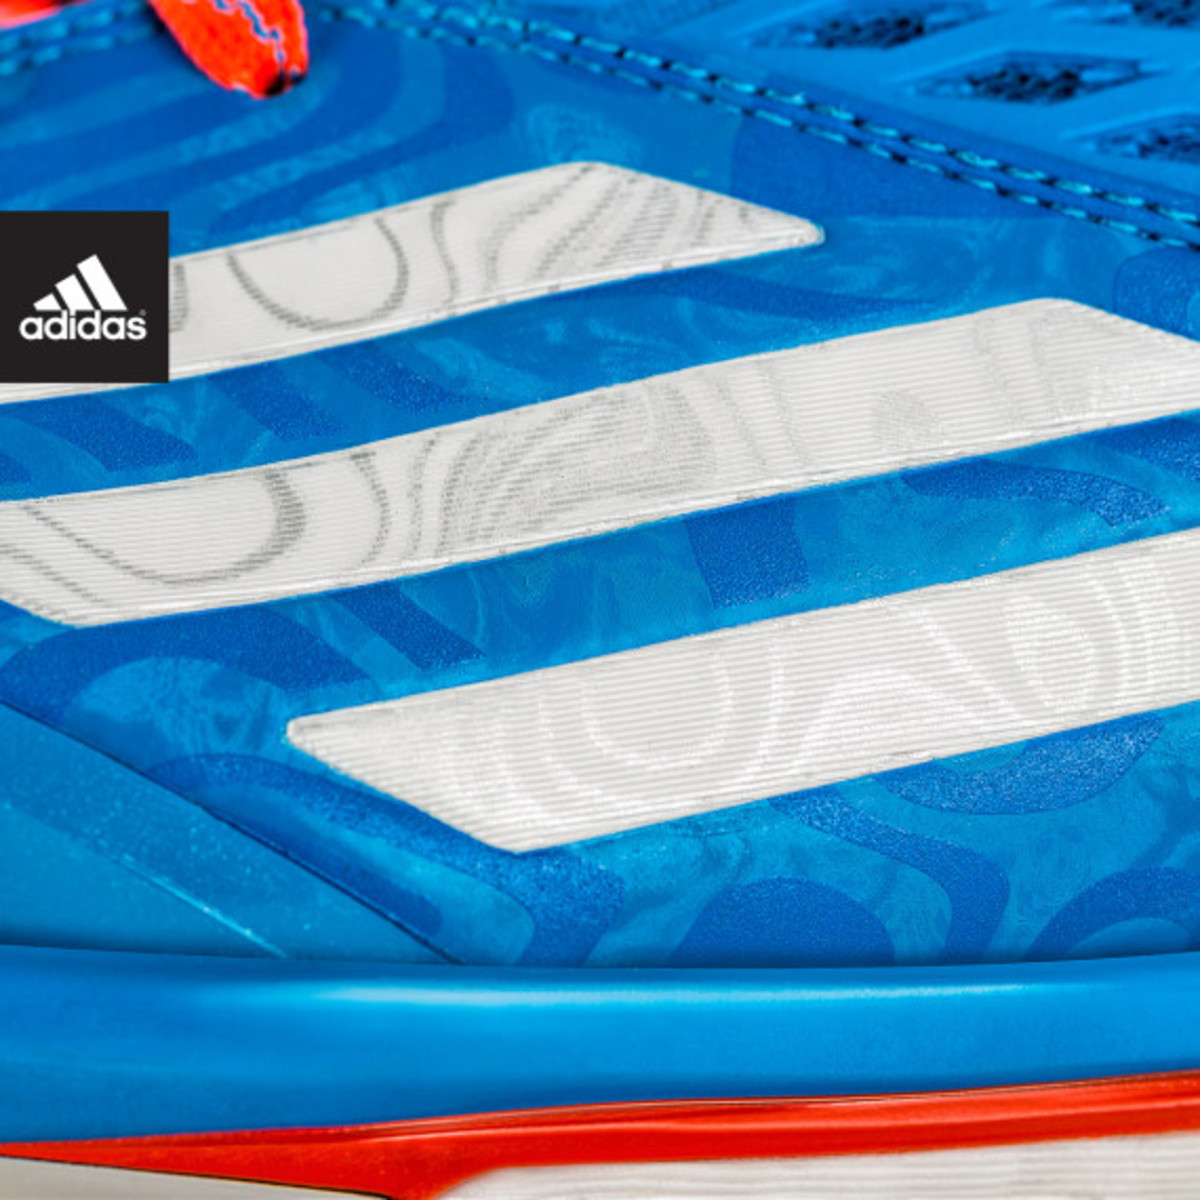 adidas-unveils-mlb-all-star-energy-boost-cleat-06